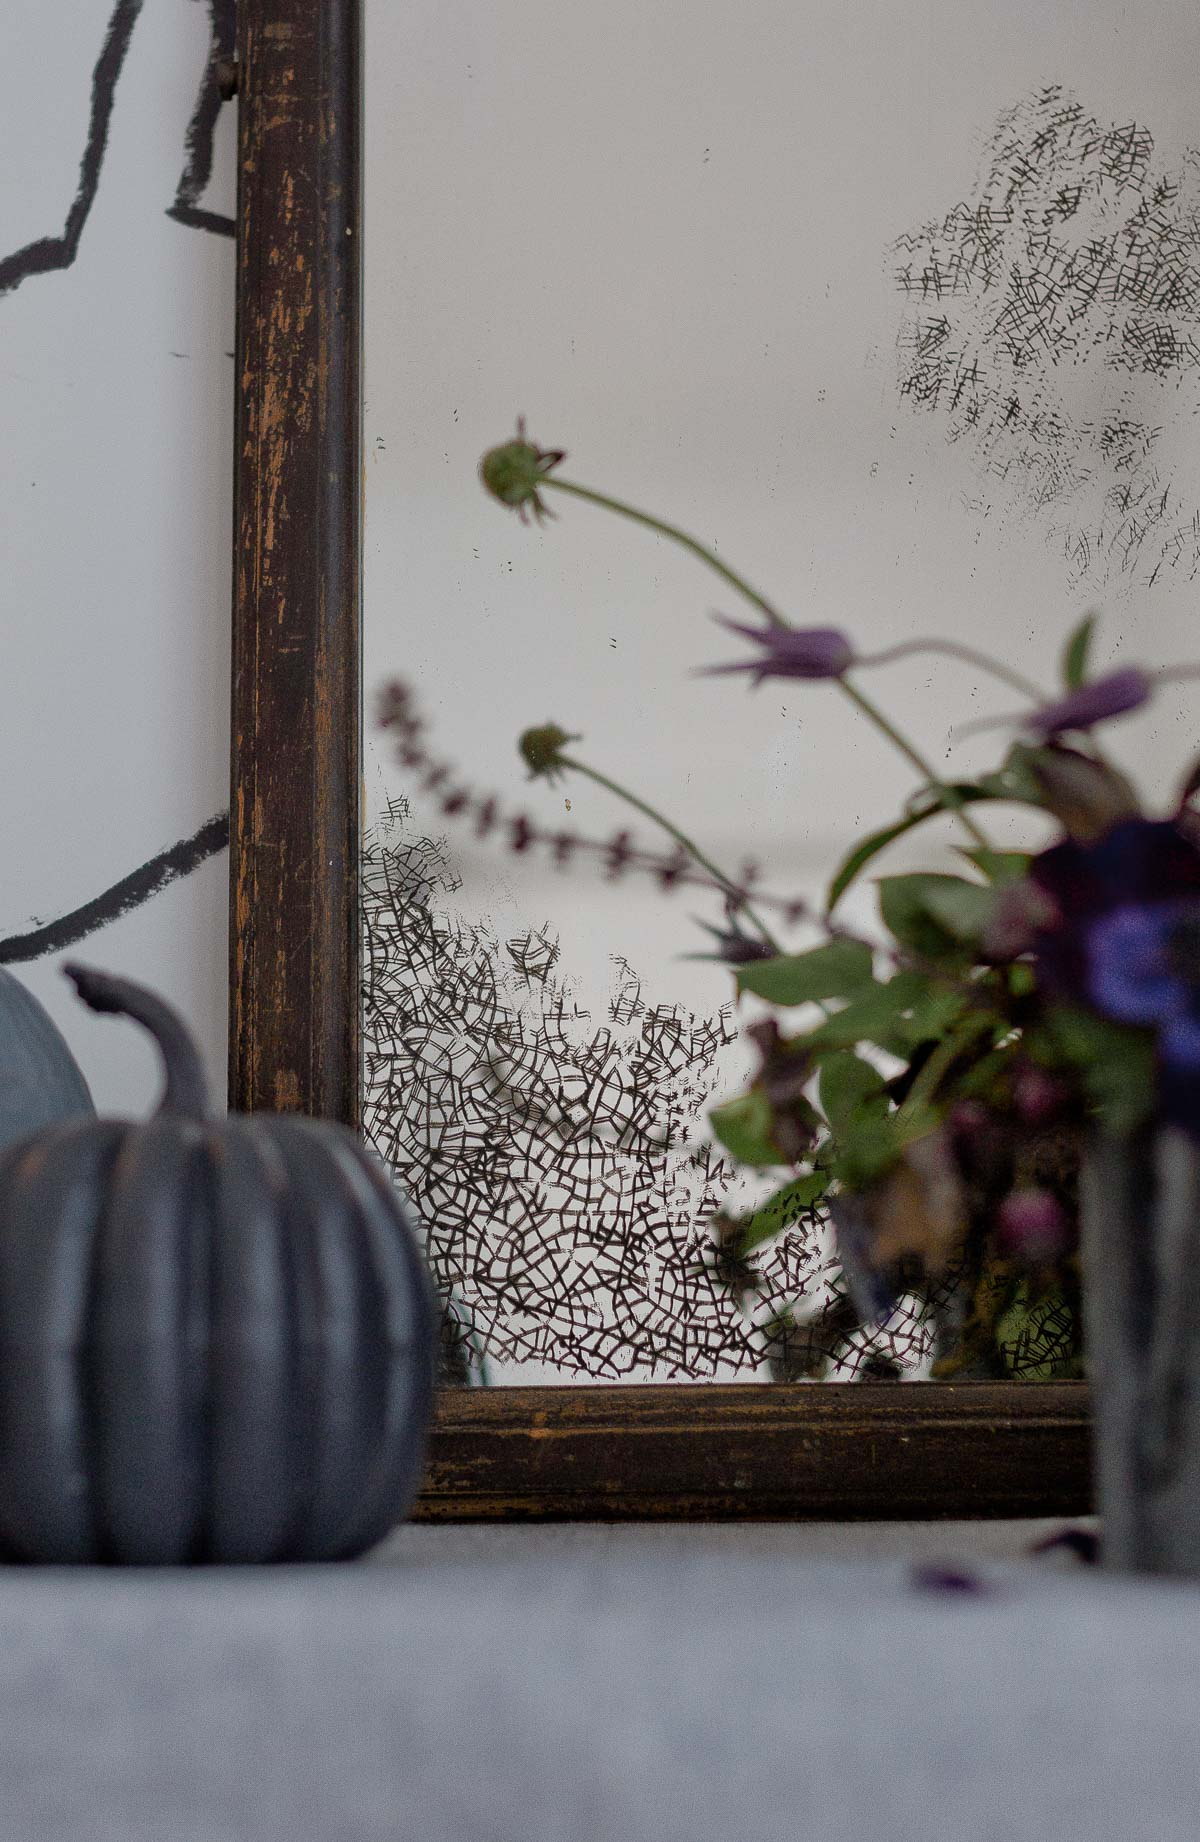 Detail photo of antique stenciled mirror for Halloween.